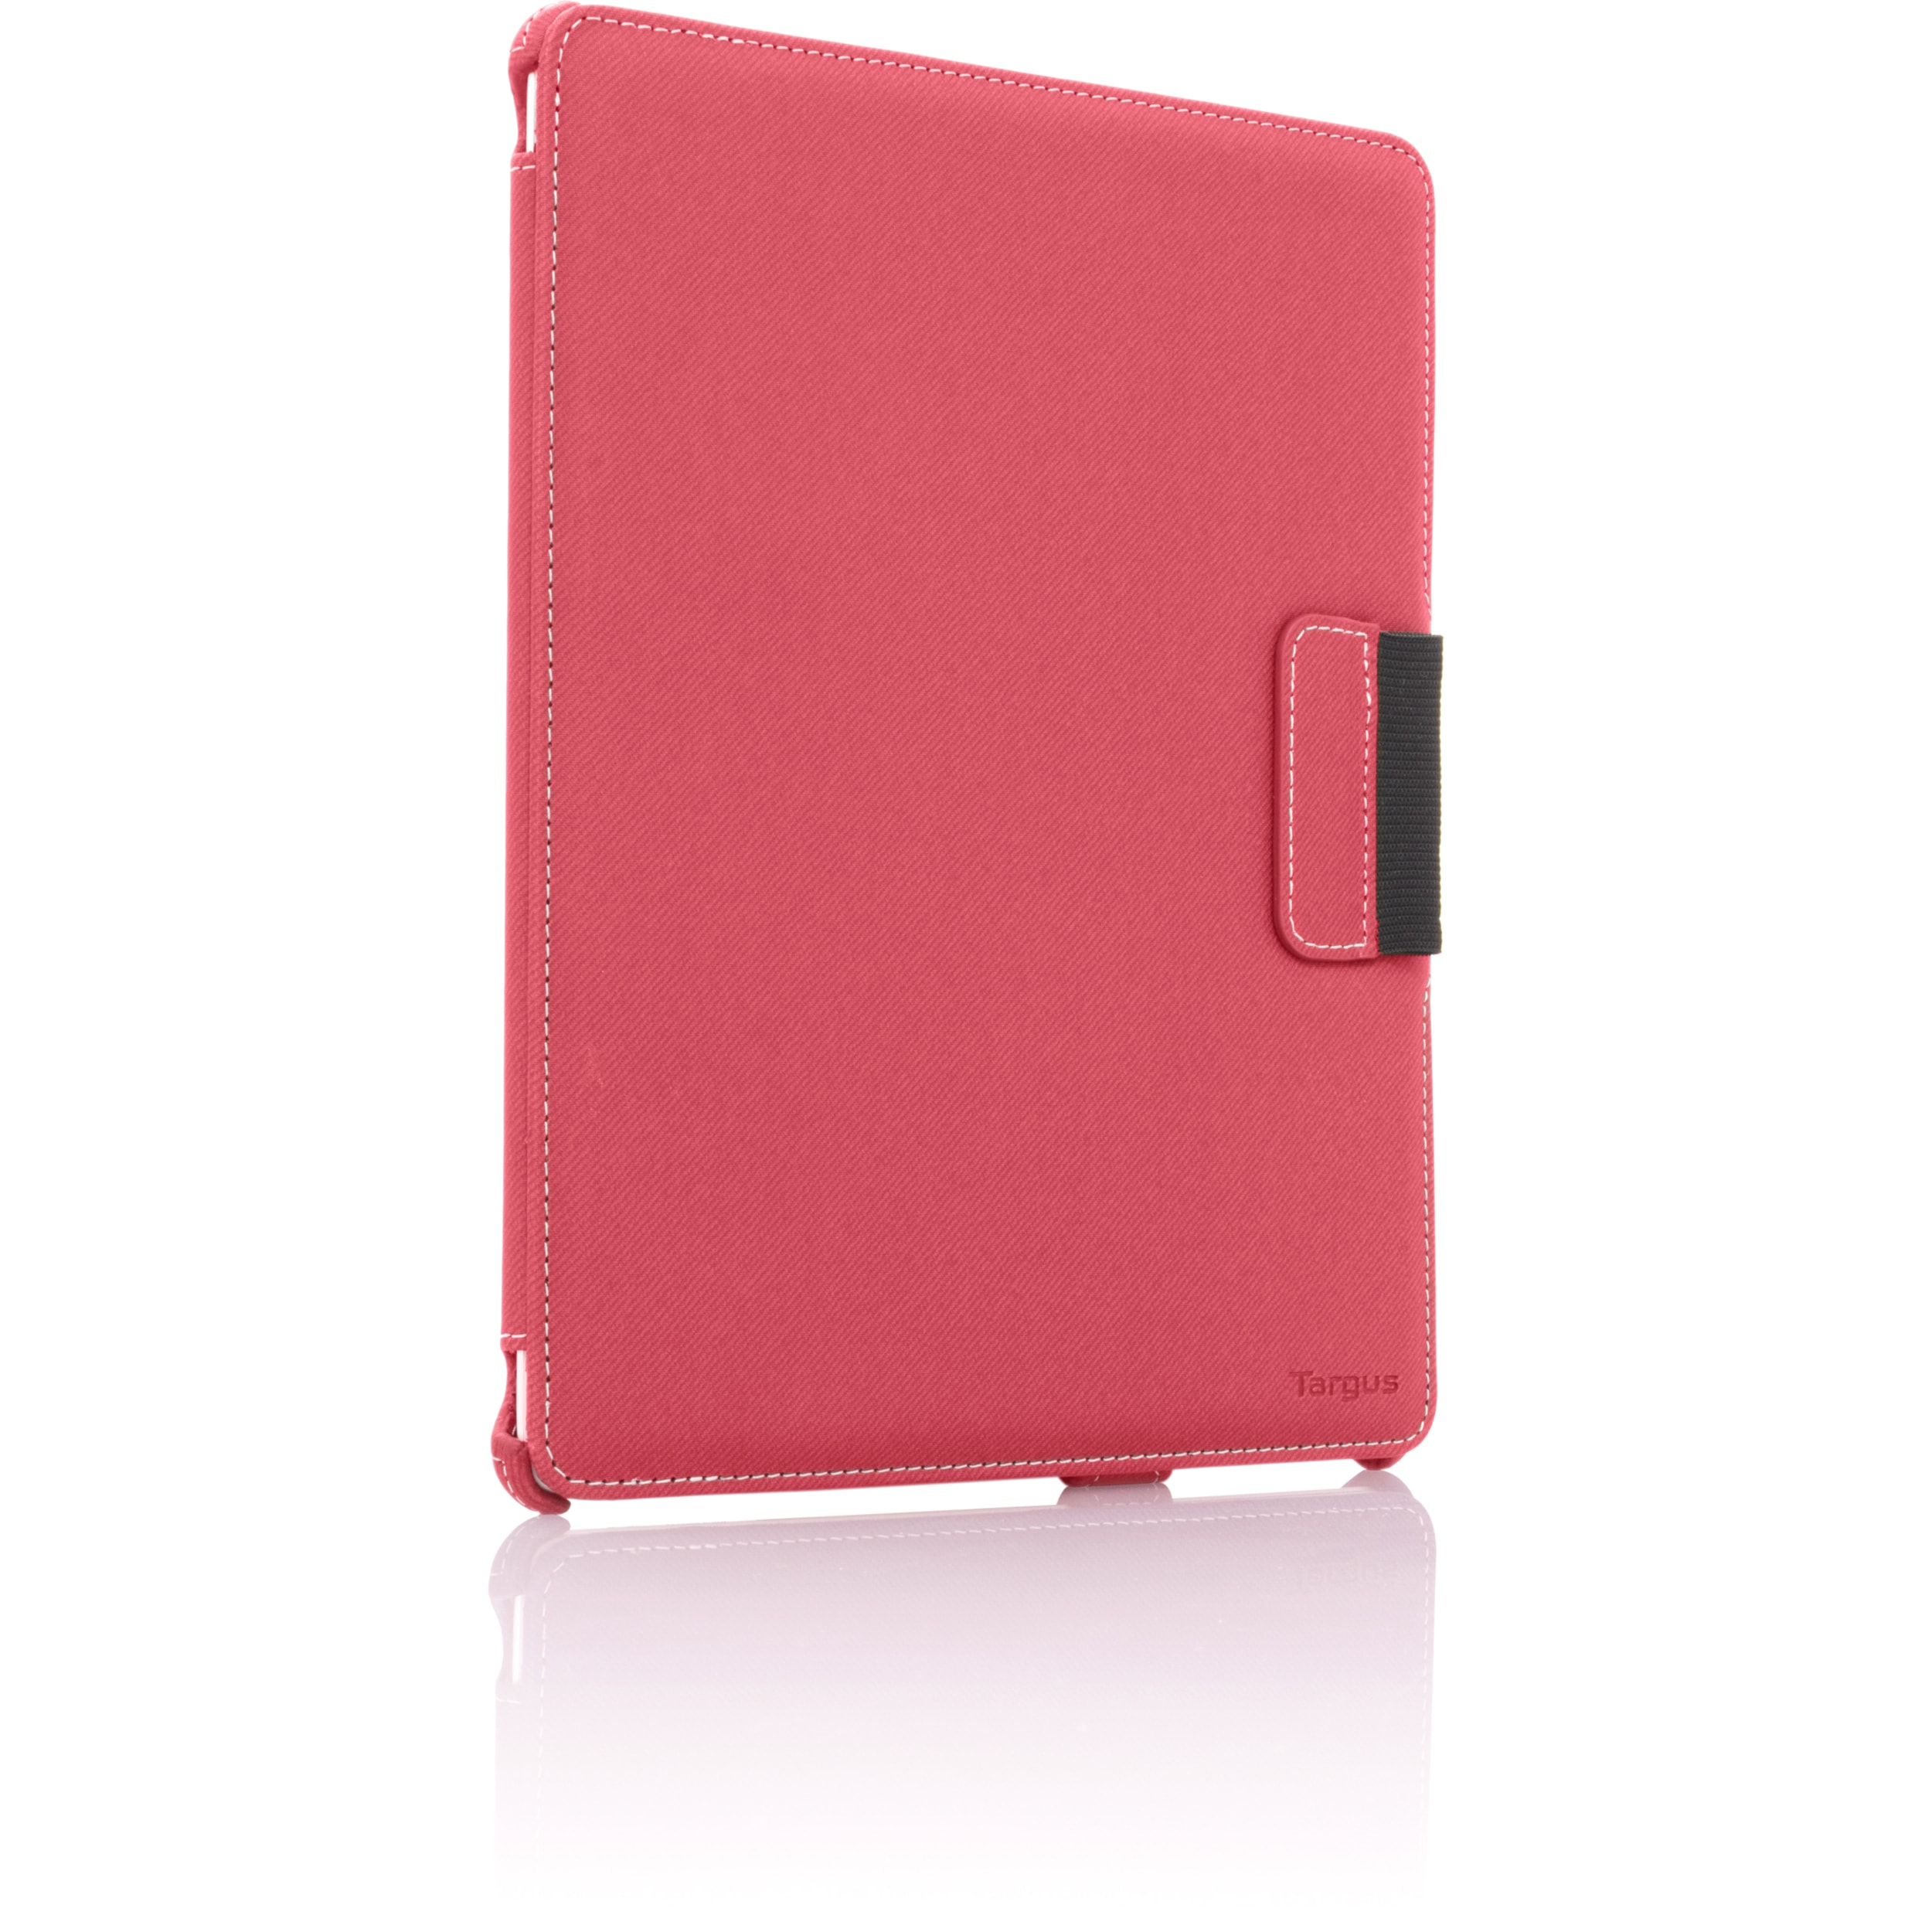 Targus Vuscape THZ15703US Carrying Case for iPad - Pink